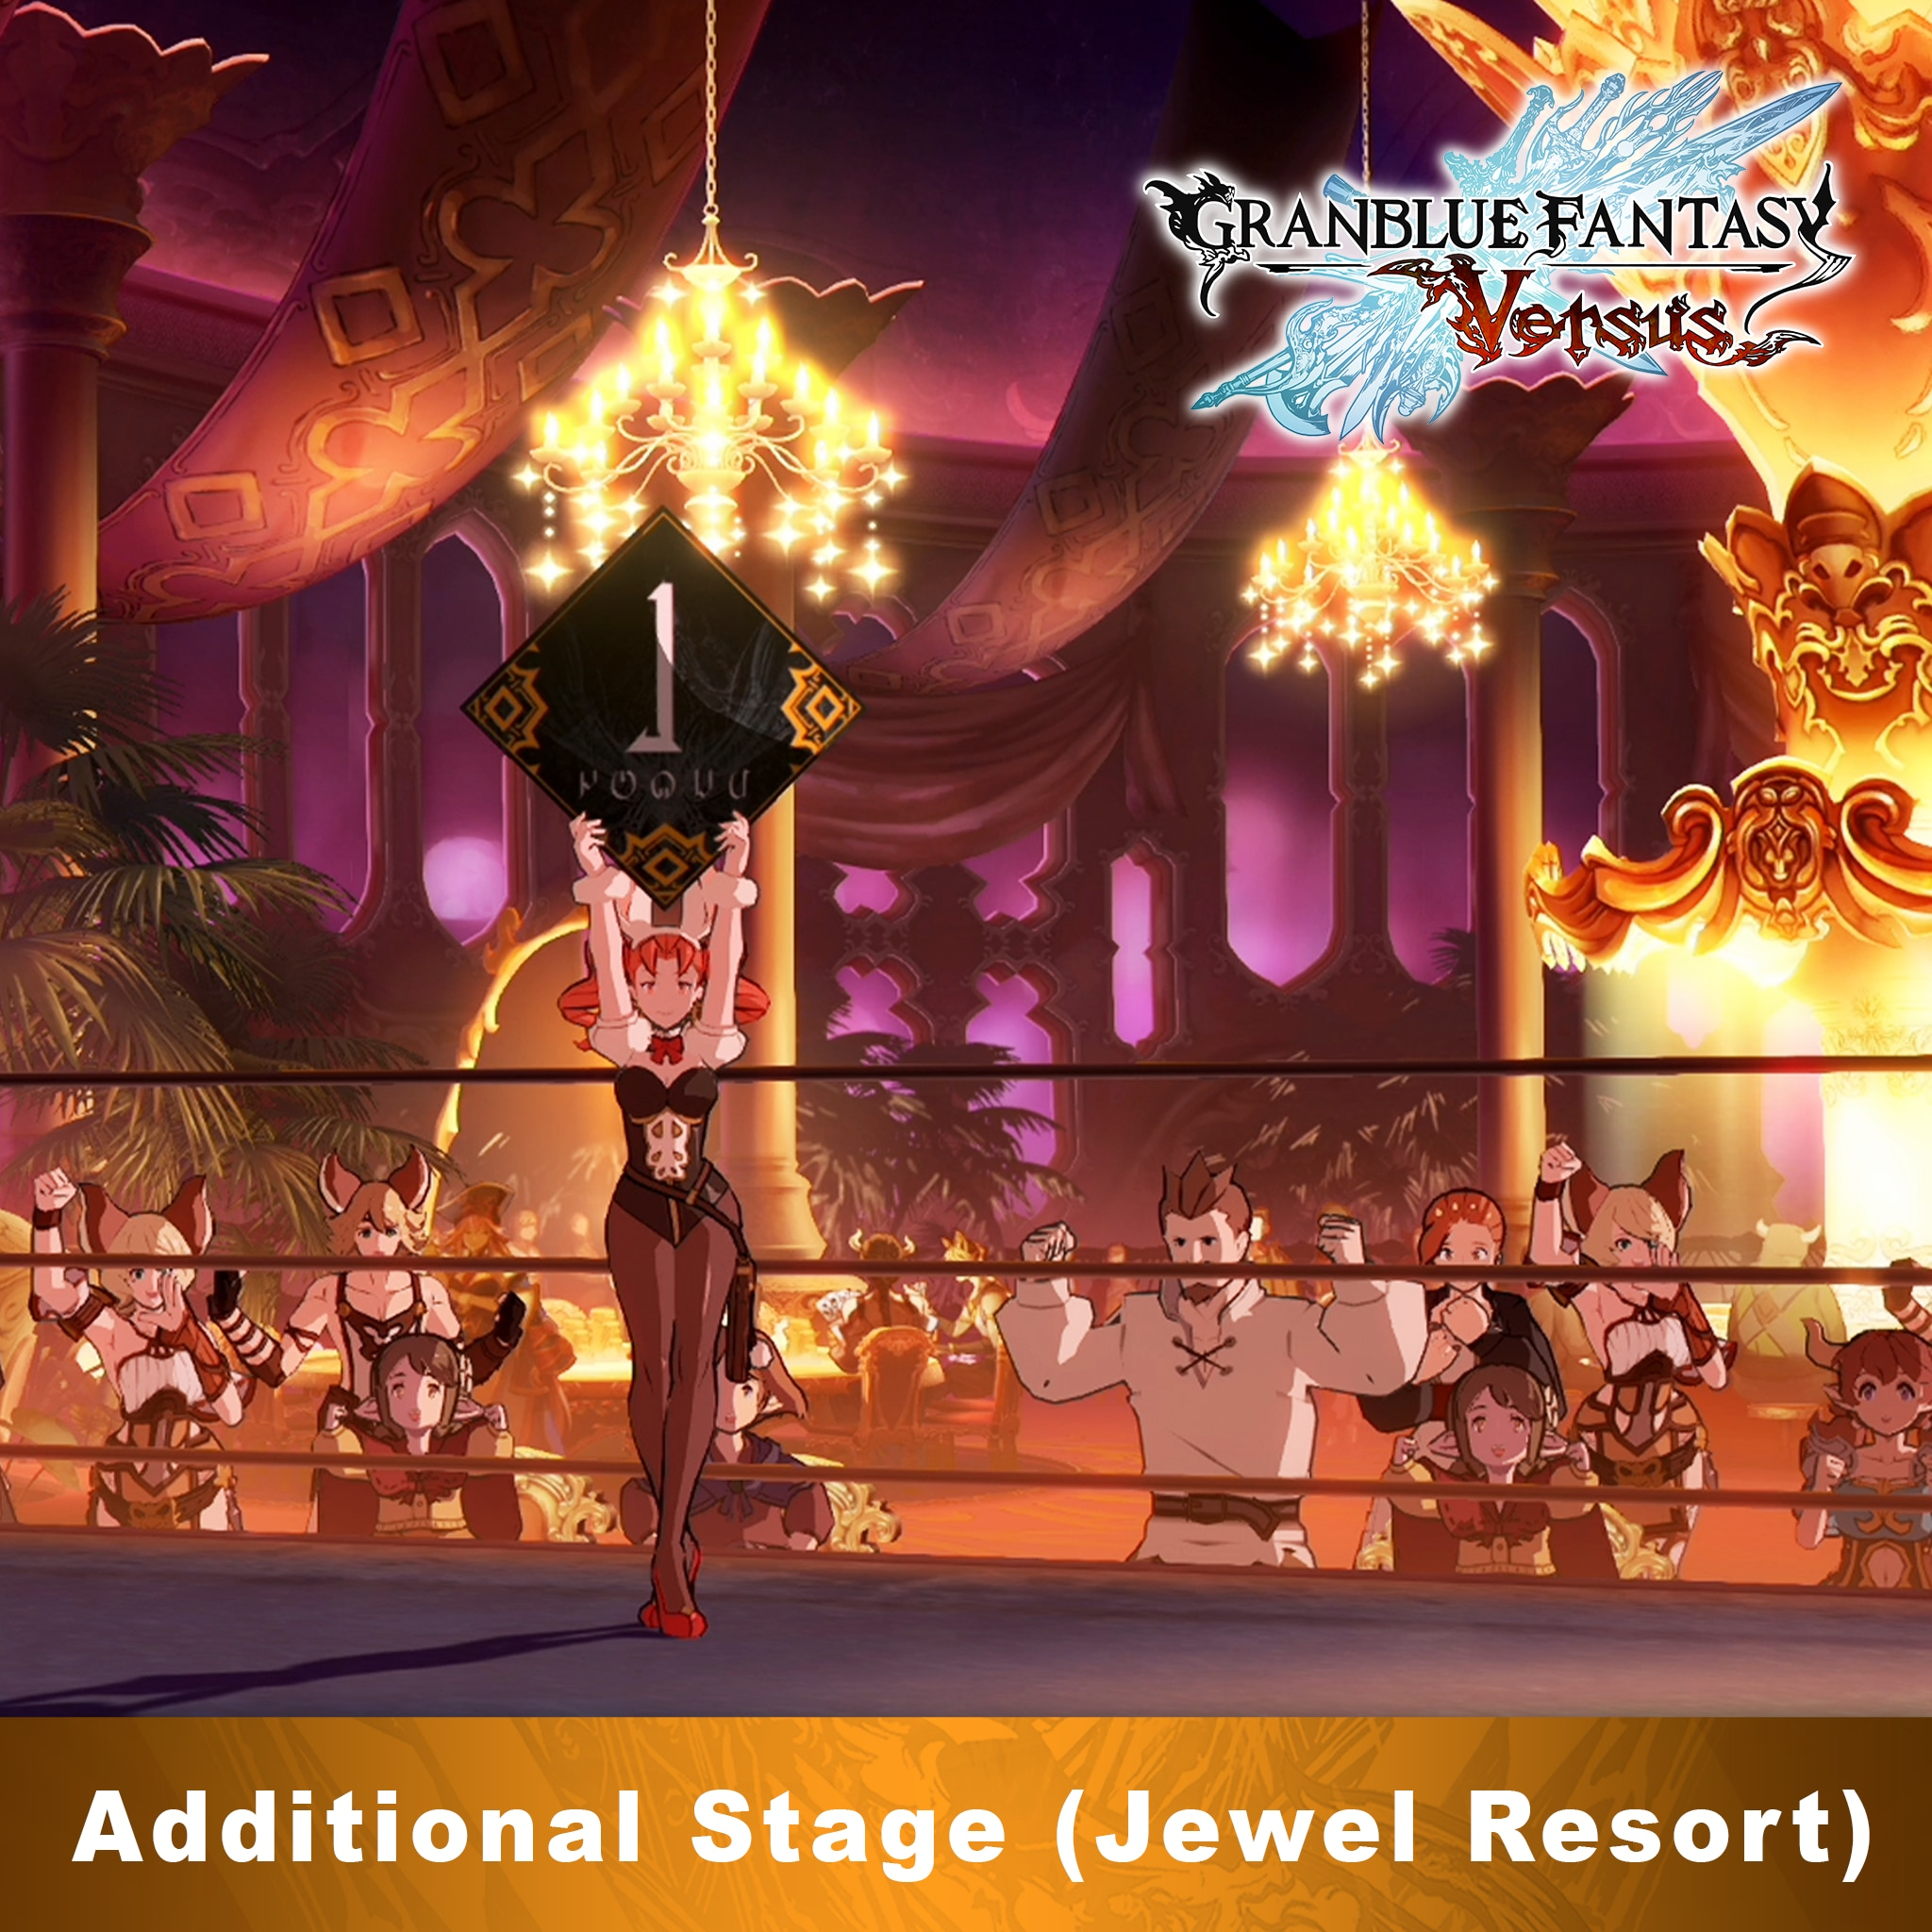 GBVS Additional Stage (Jewel Resort)